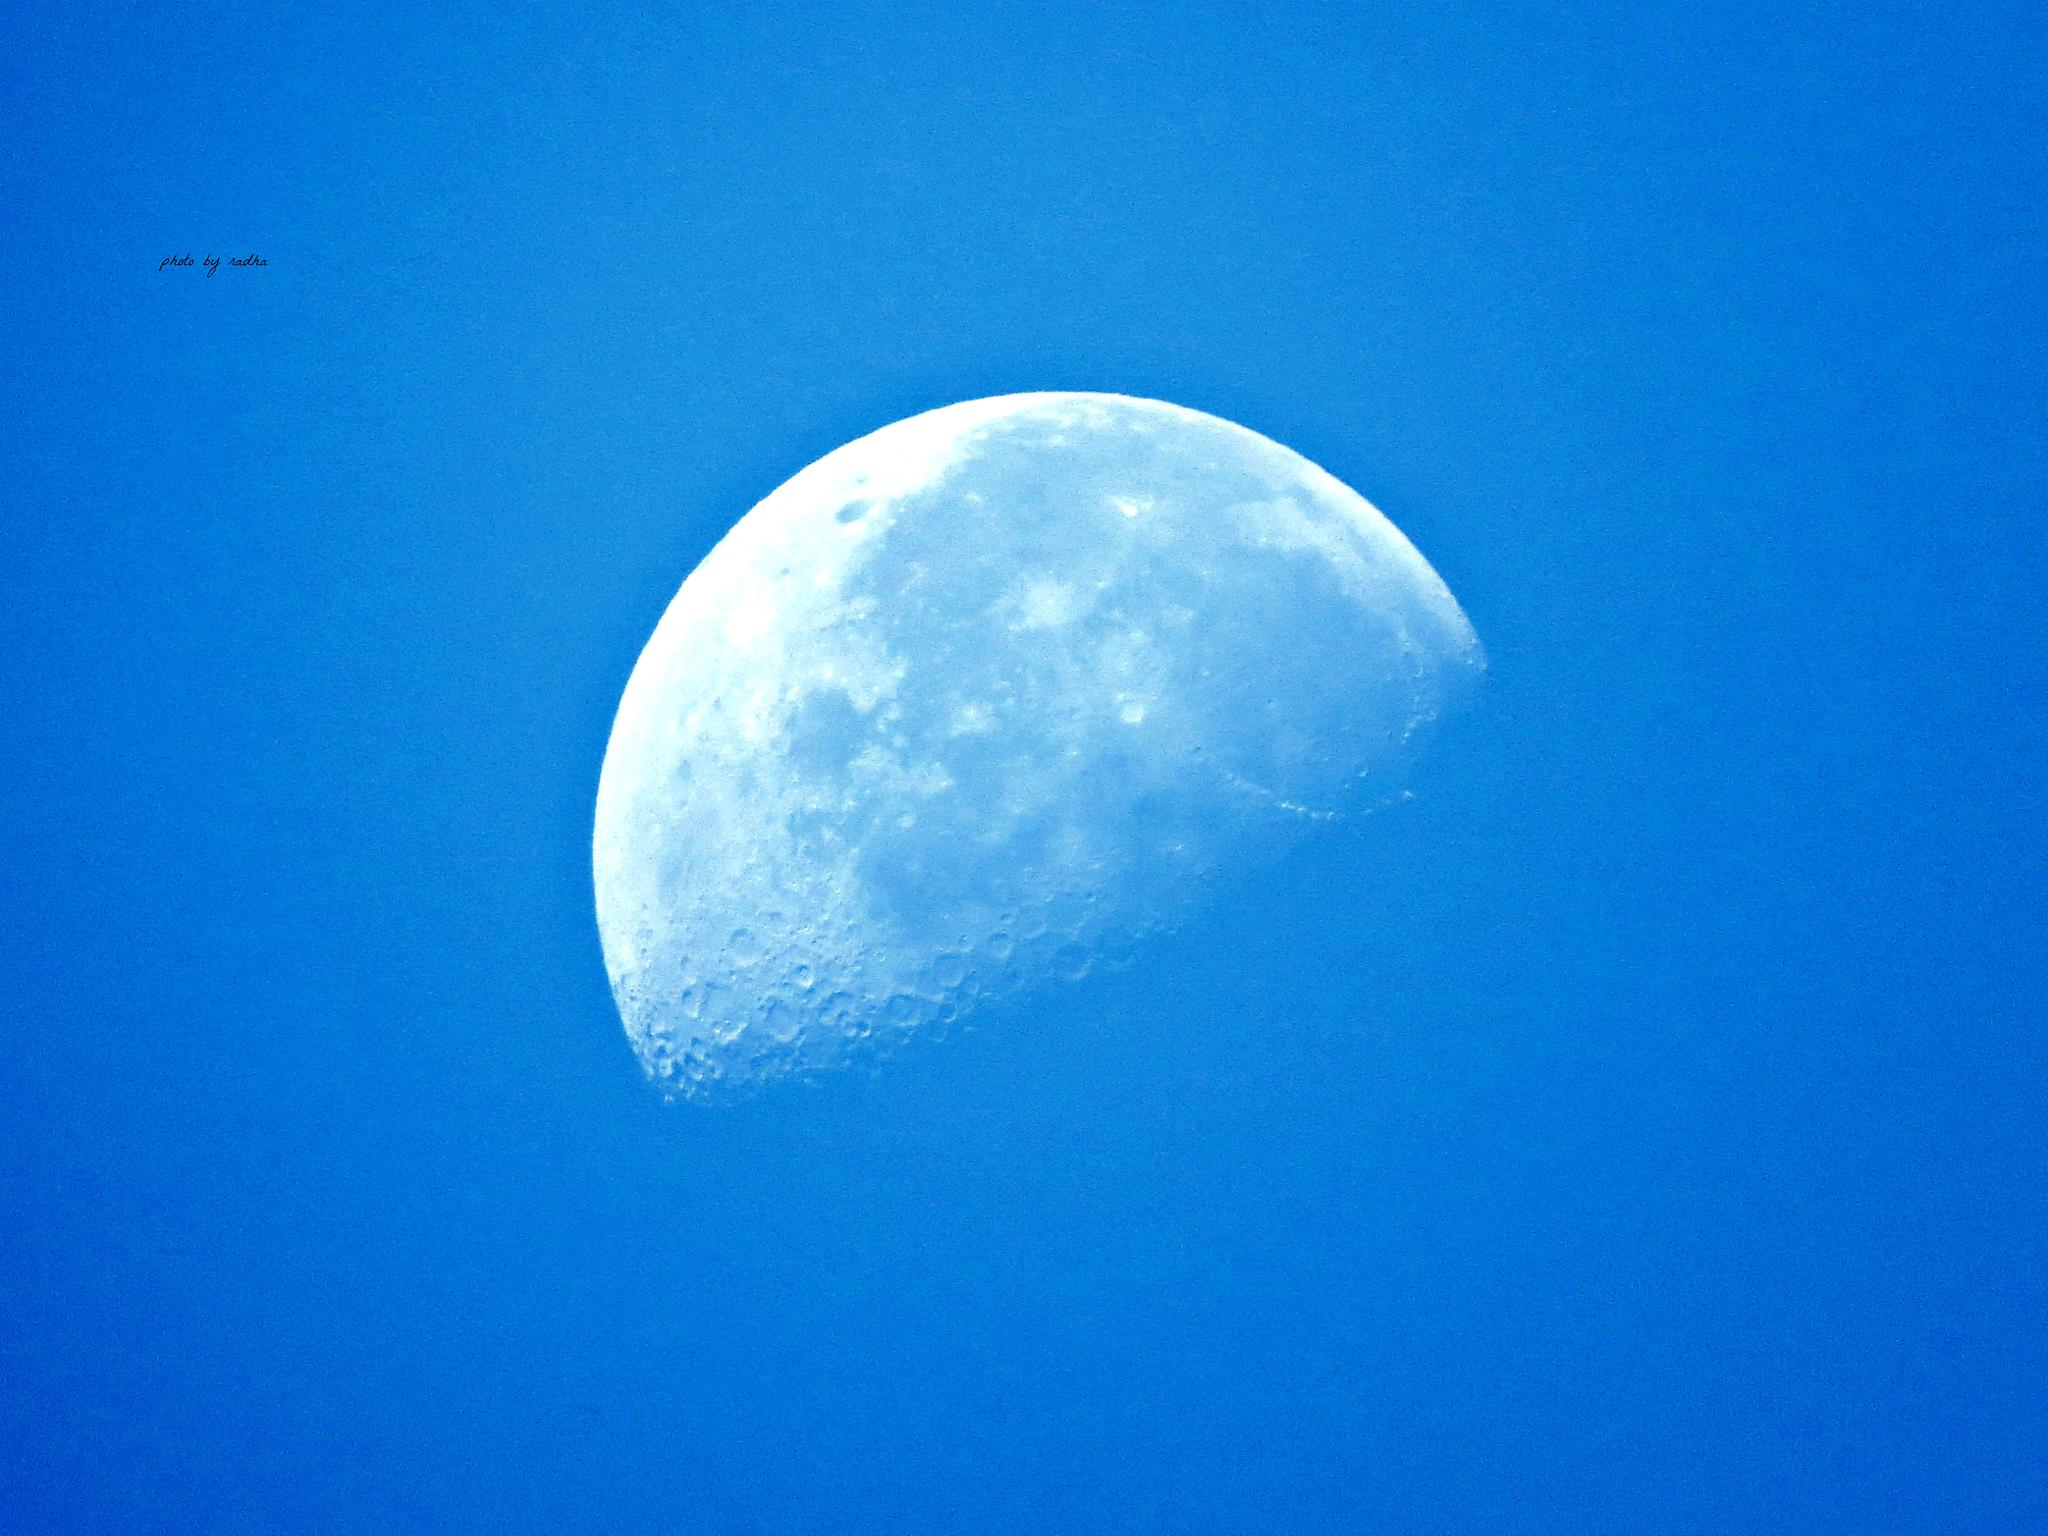 Moon in daylight by Radhamadhavan K S